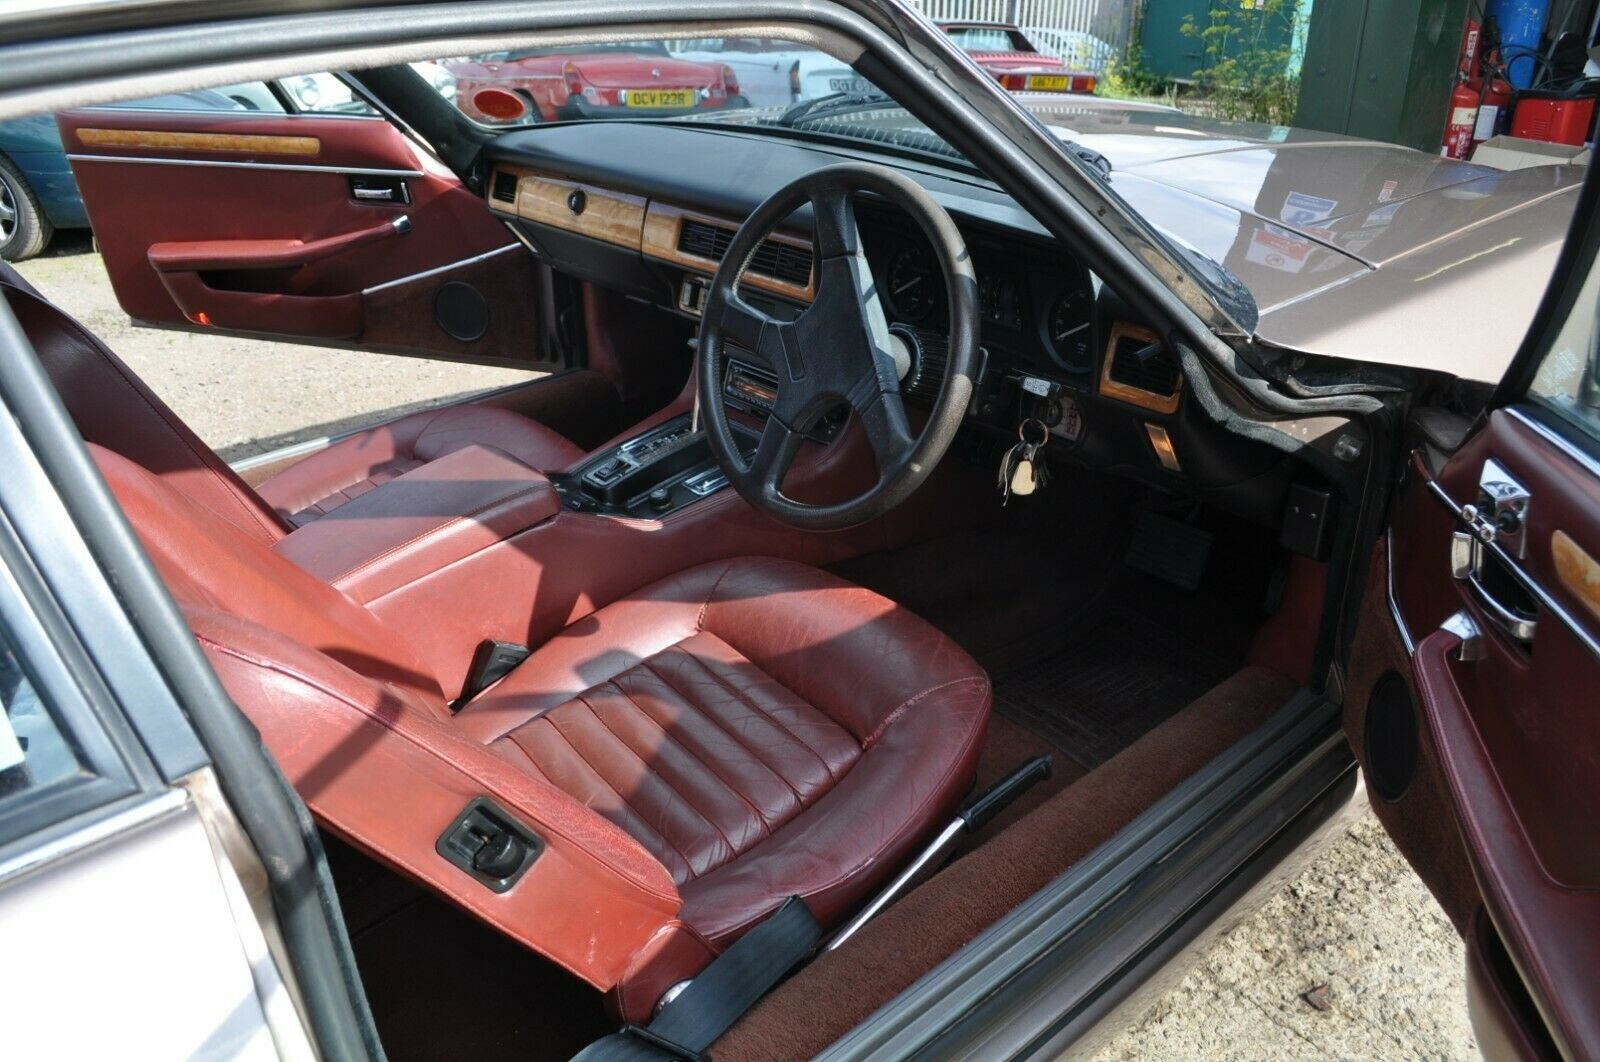 1984 JAGUAR XJS V12 5.3 HE VERY RARE GOOD CONDITION WITH MOT TWR For Sale (picture 4 of 6)